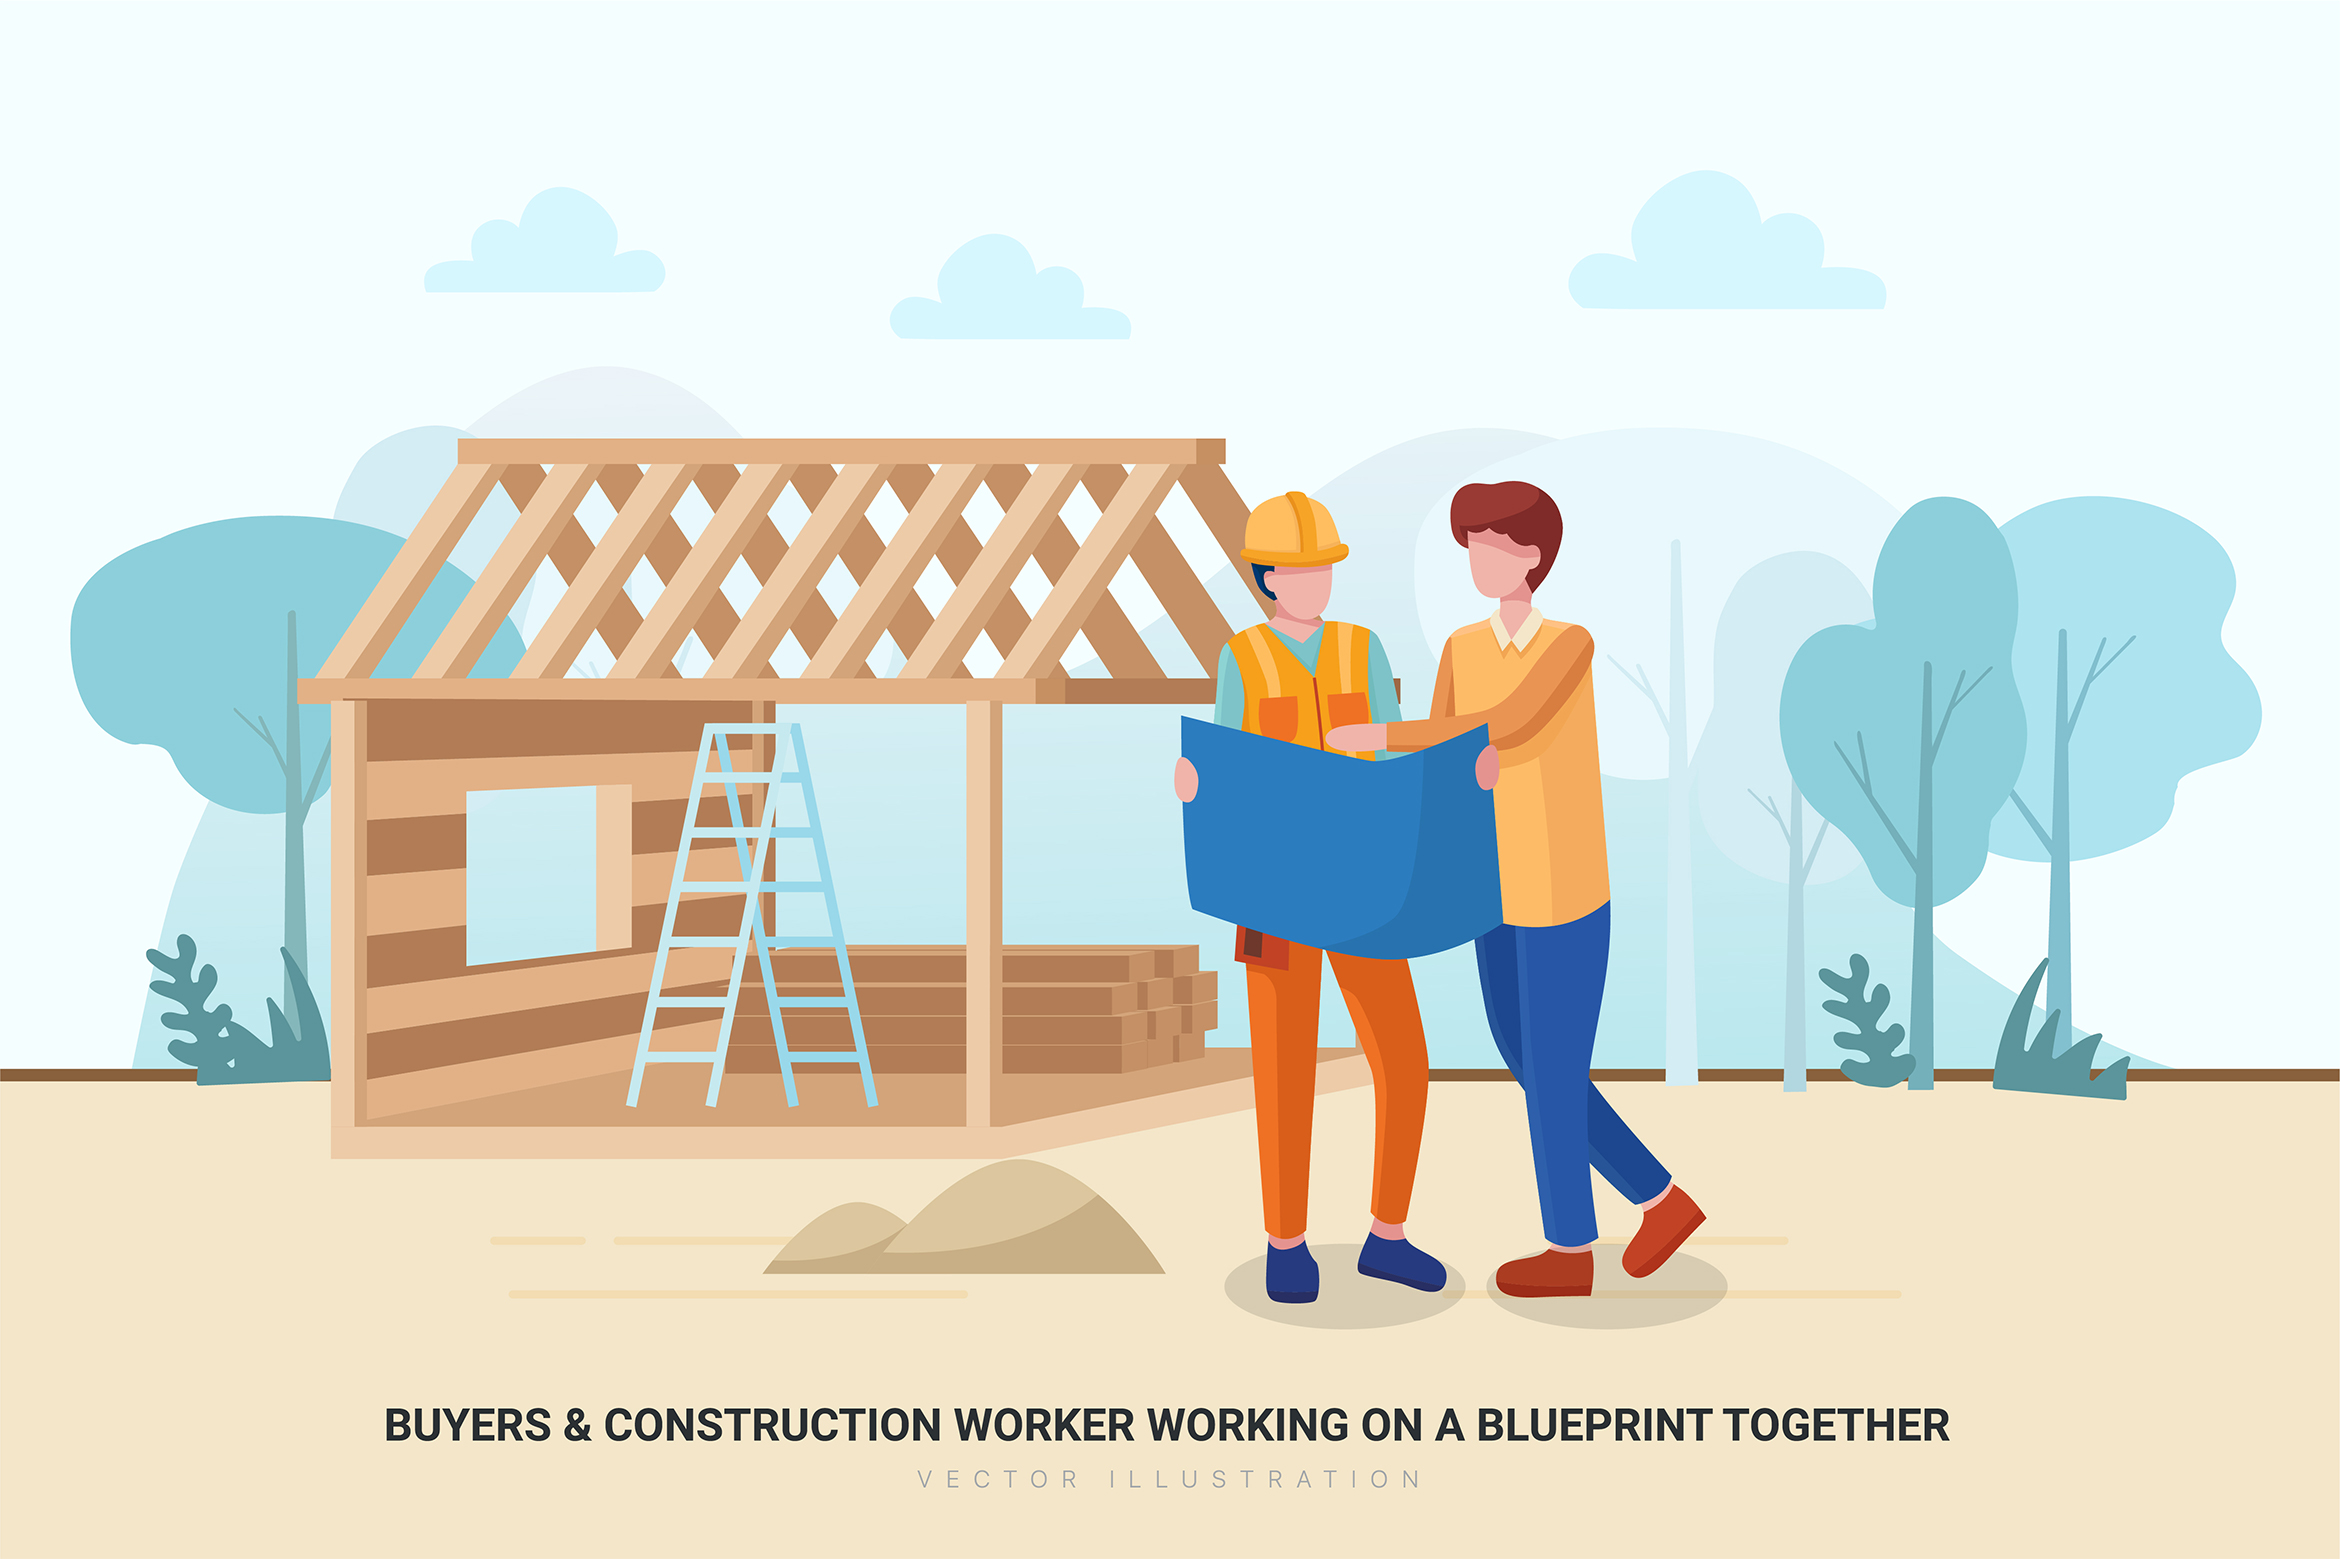 Construction & Real Estate Vector Illustration - Part 30 example image 5